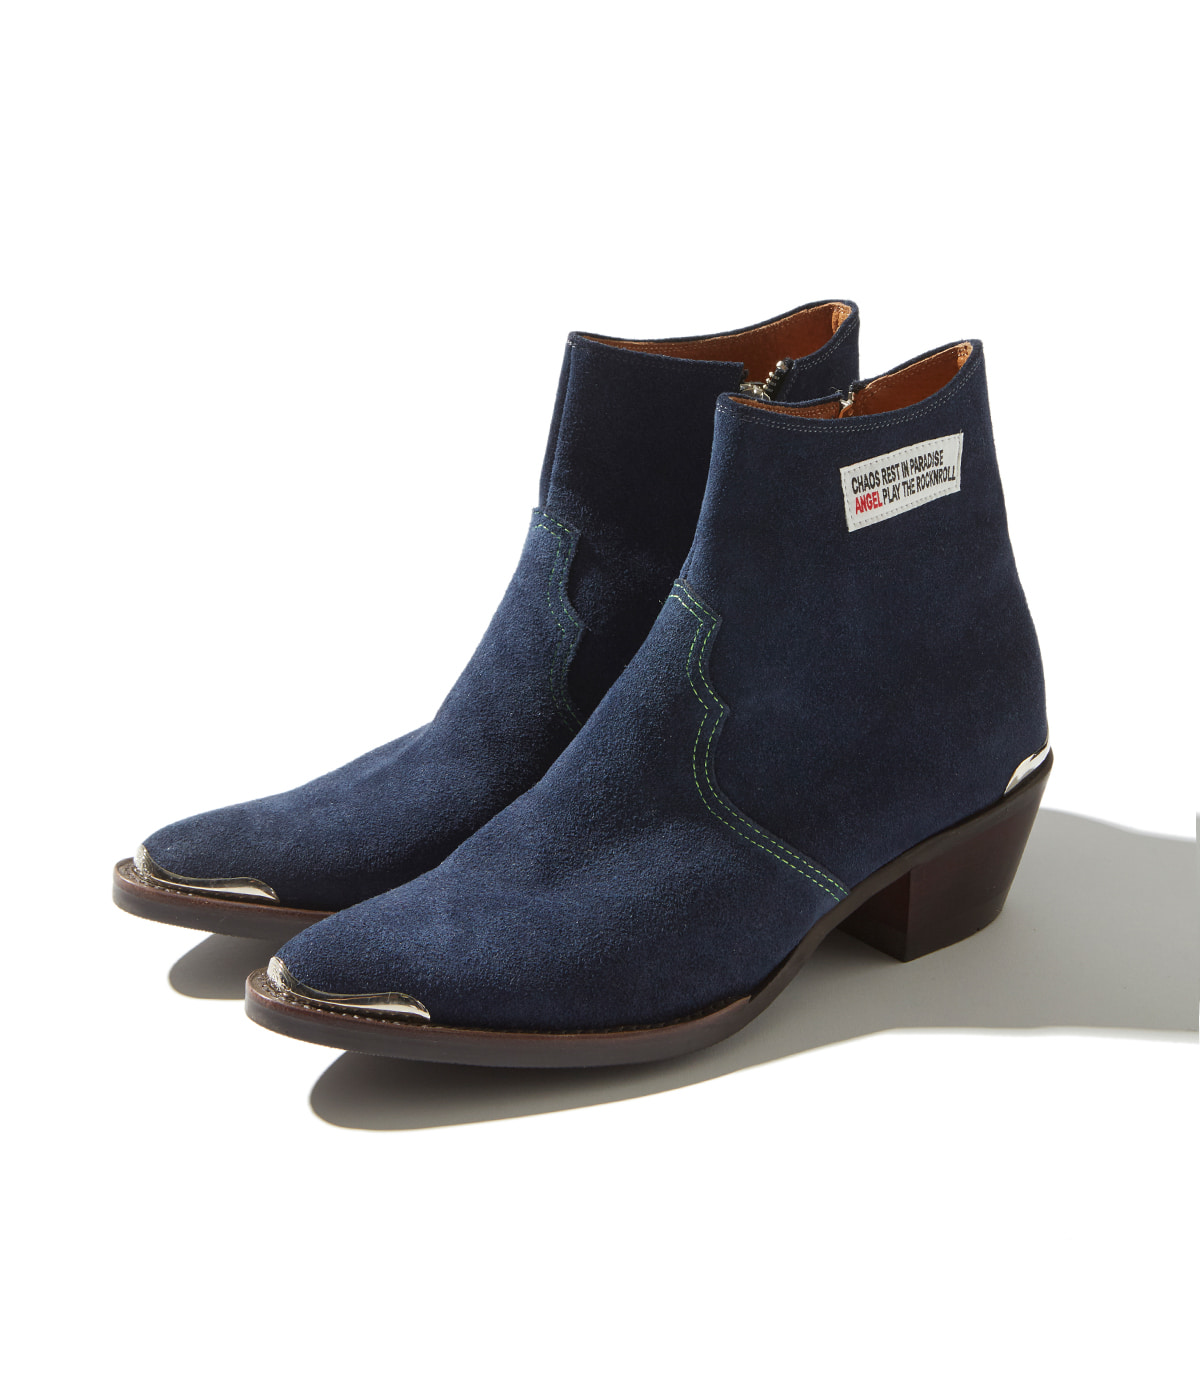 Western Ankle Boots (Navy)